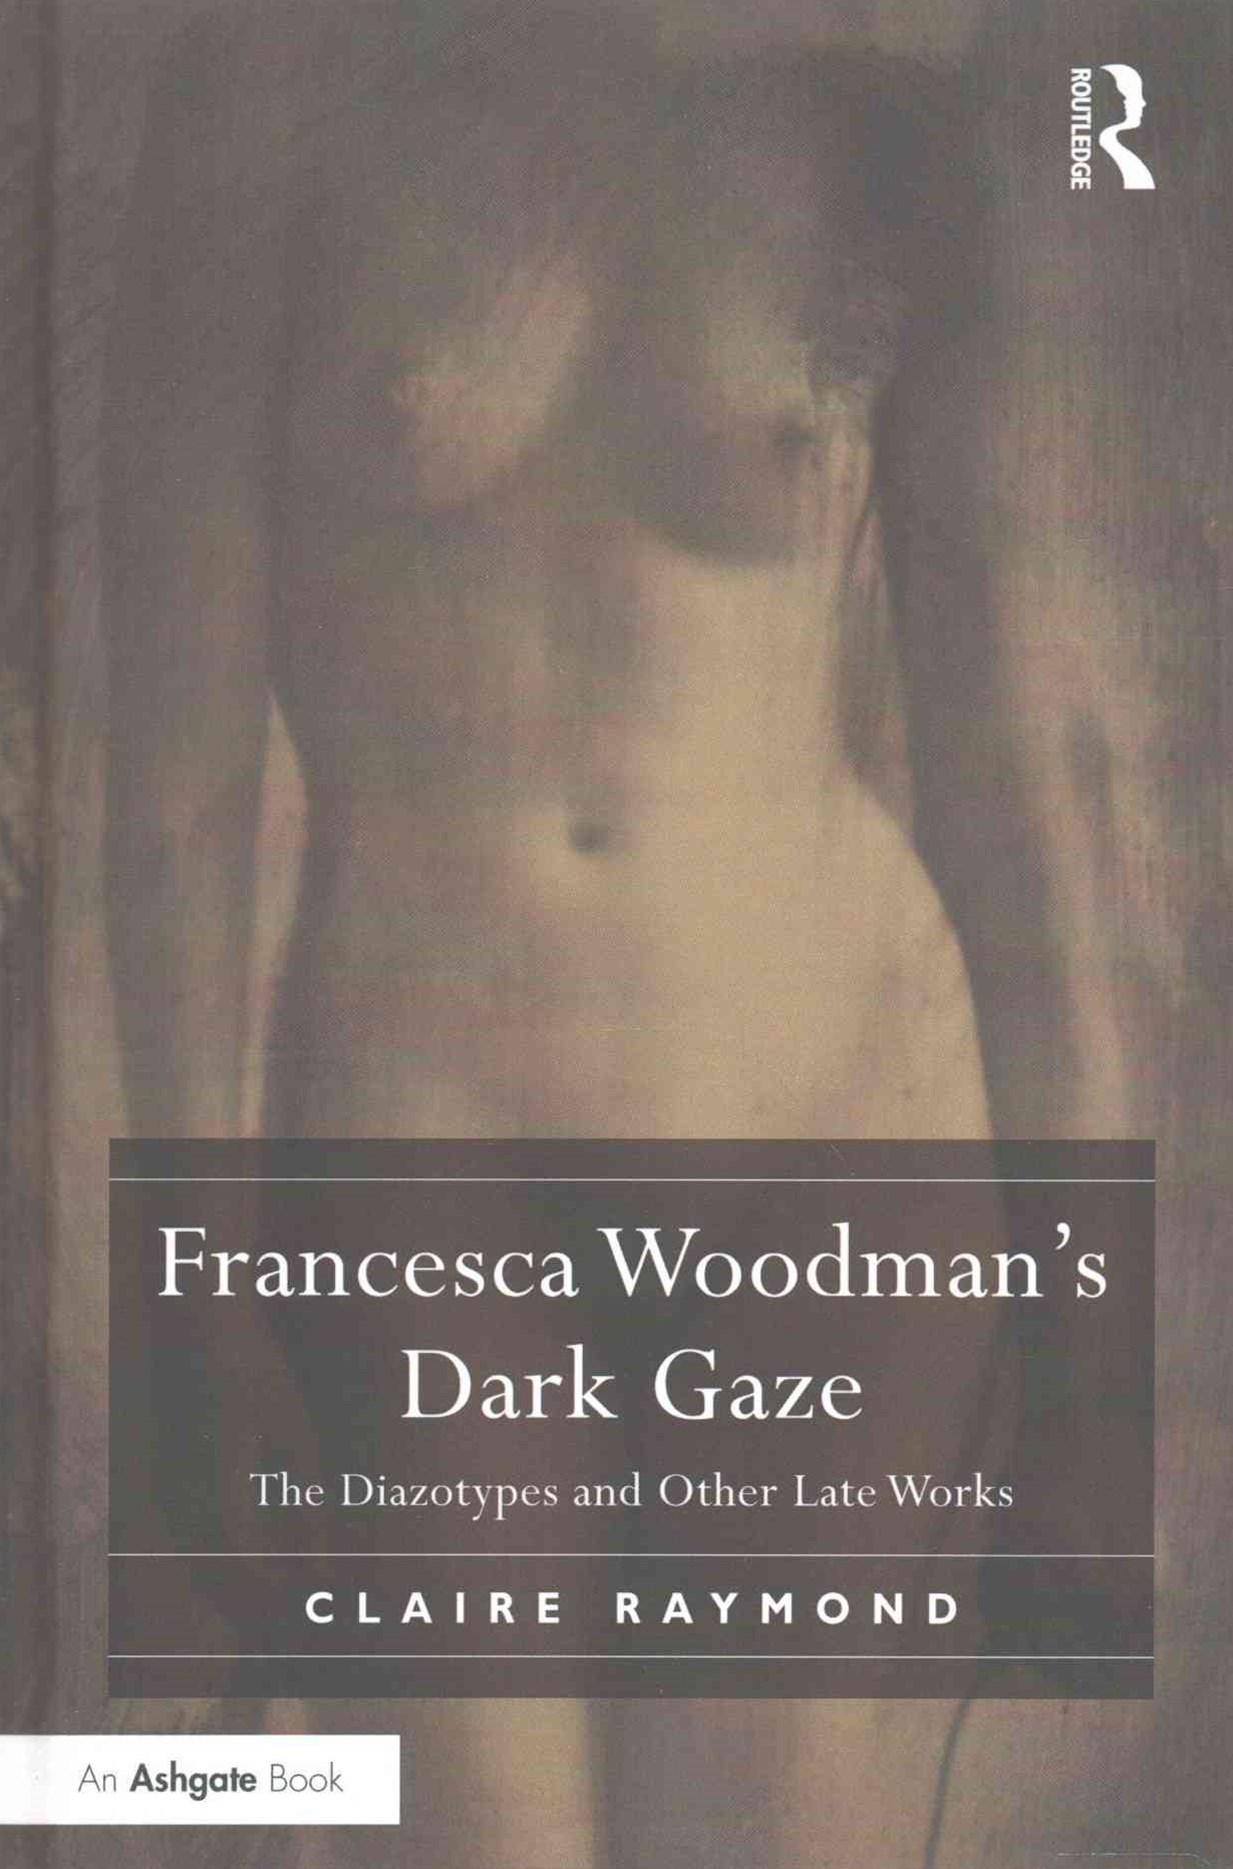 Francesca Woodman's Dark Gaze